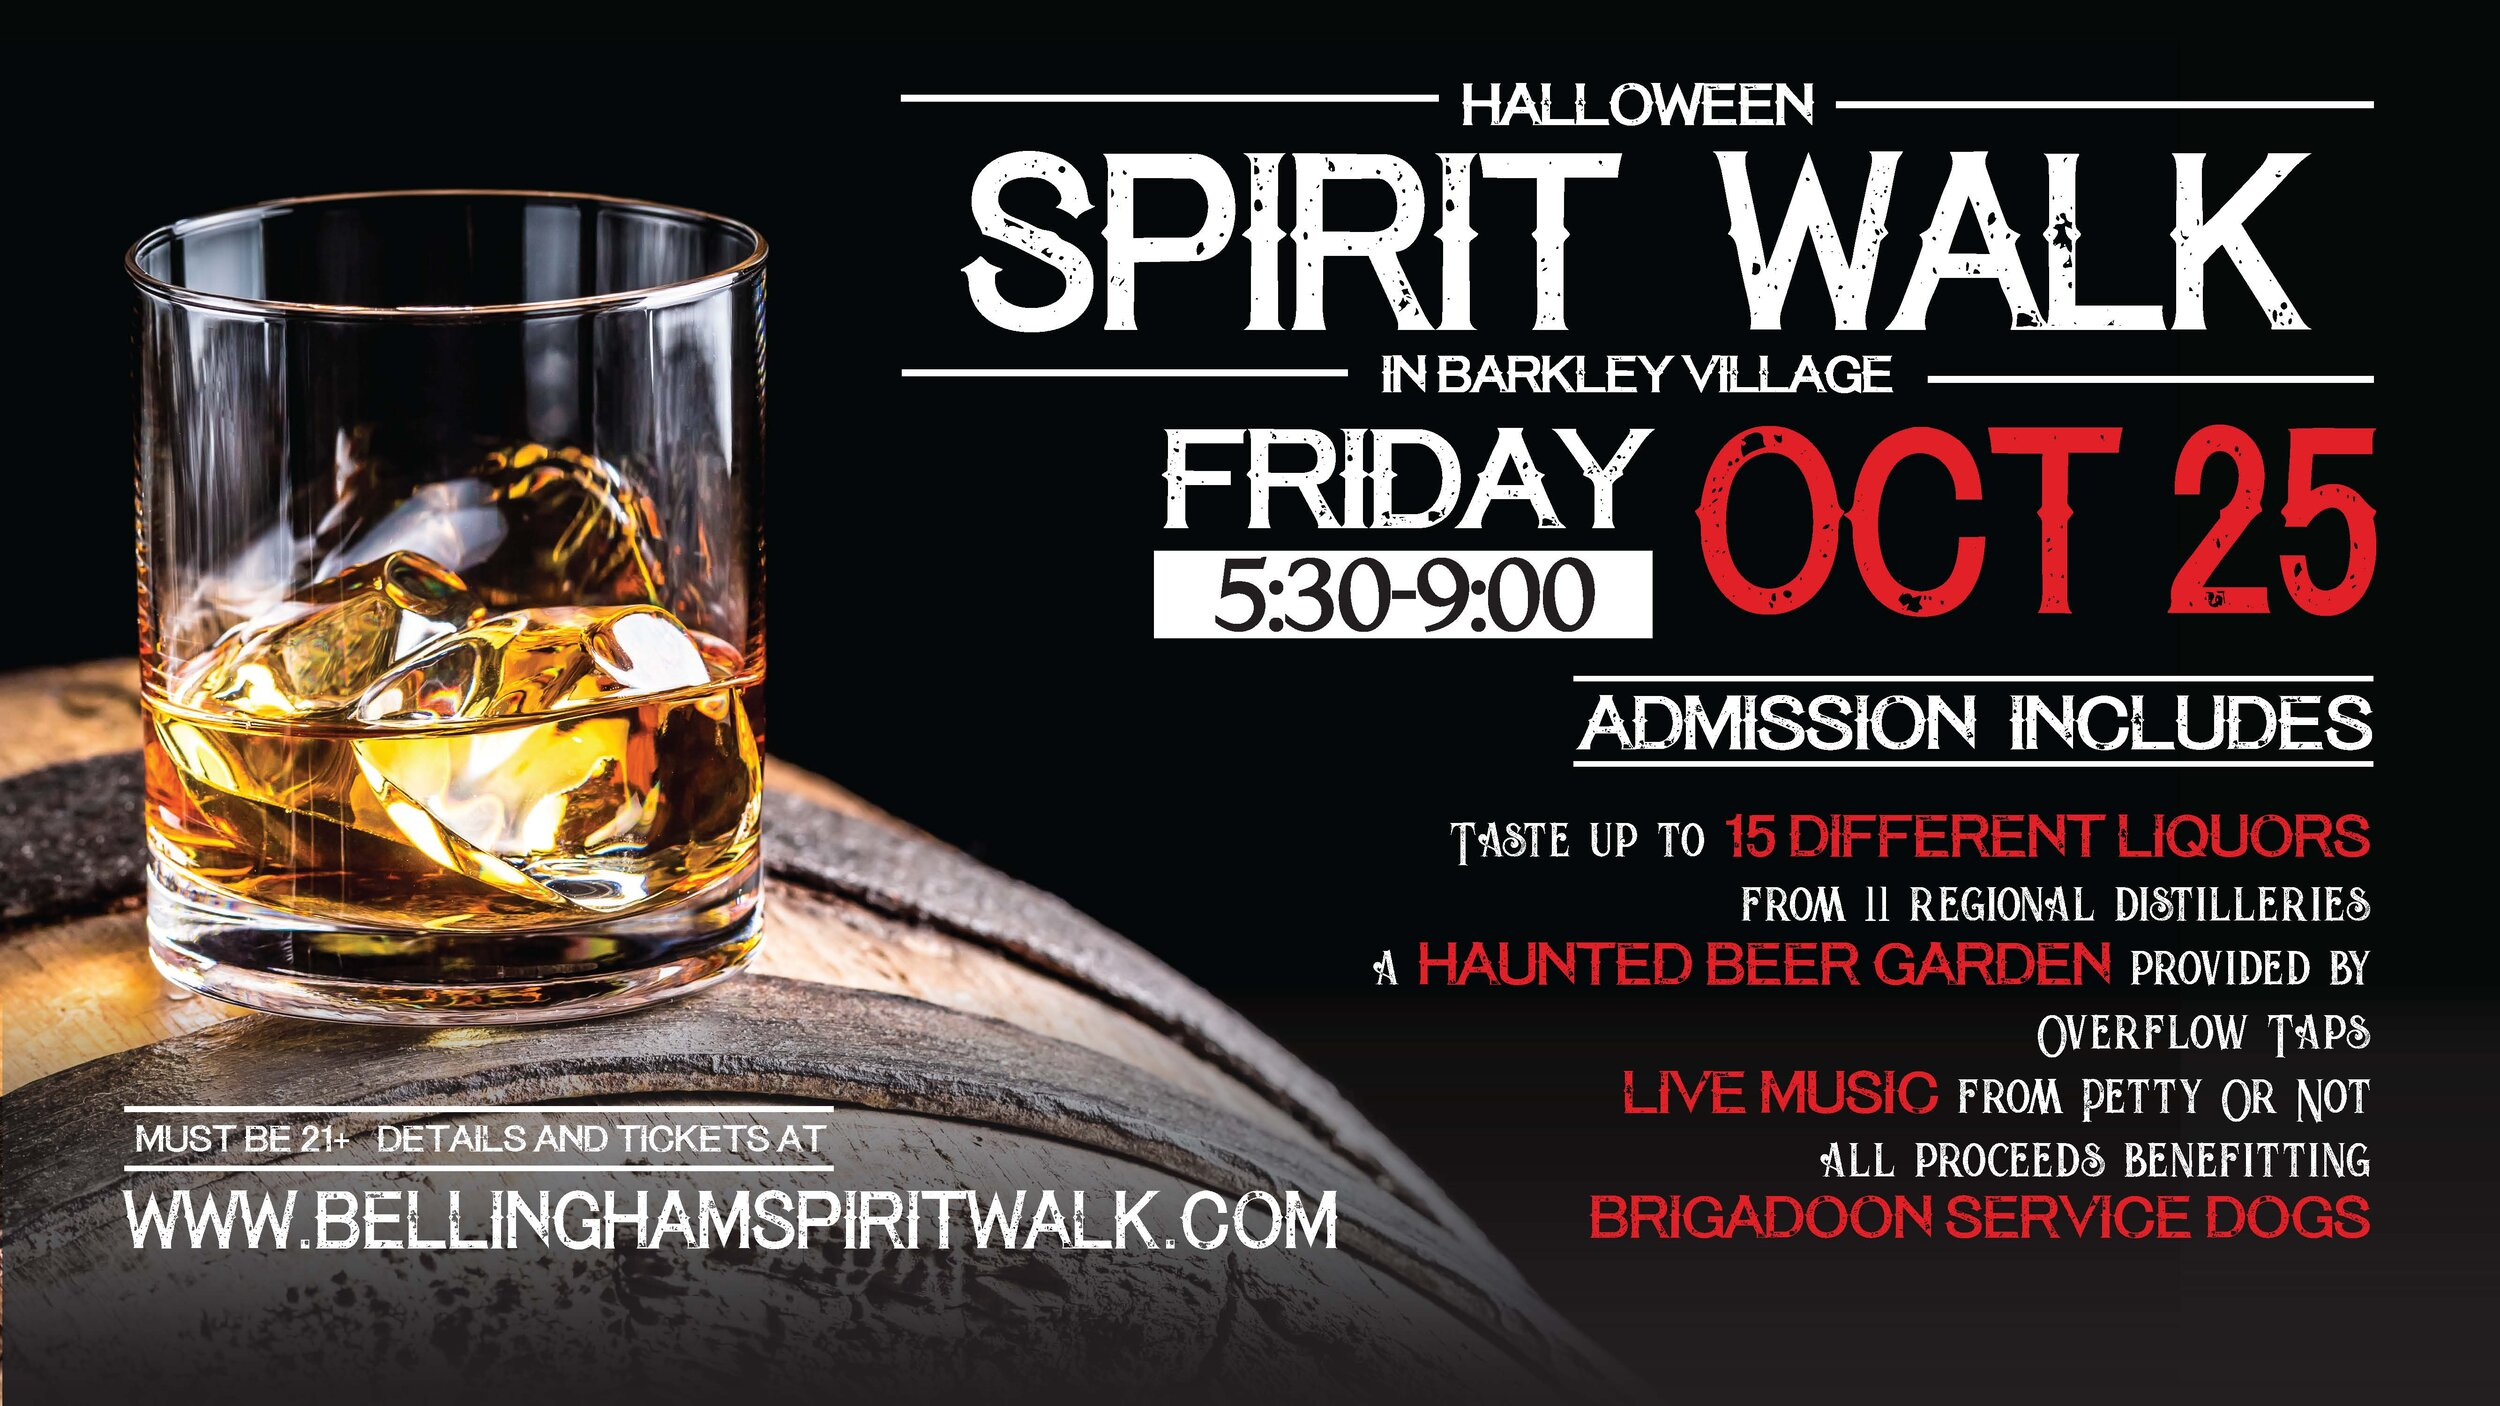 facebook event post for spirit walk 2019.jpg